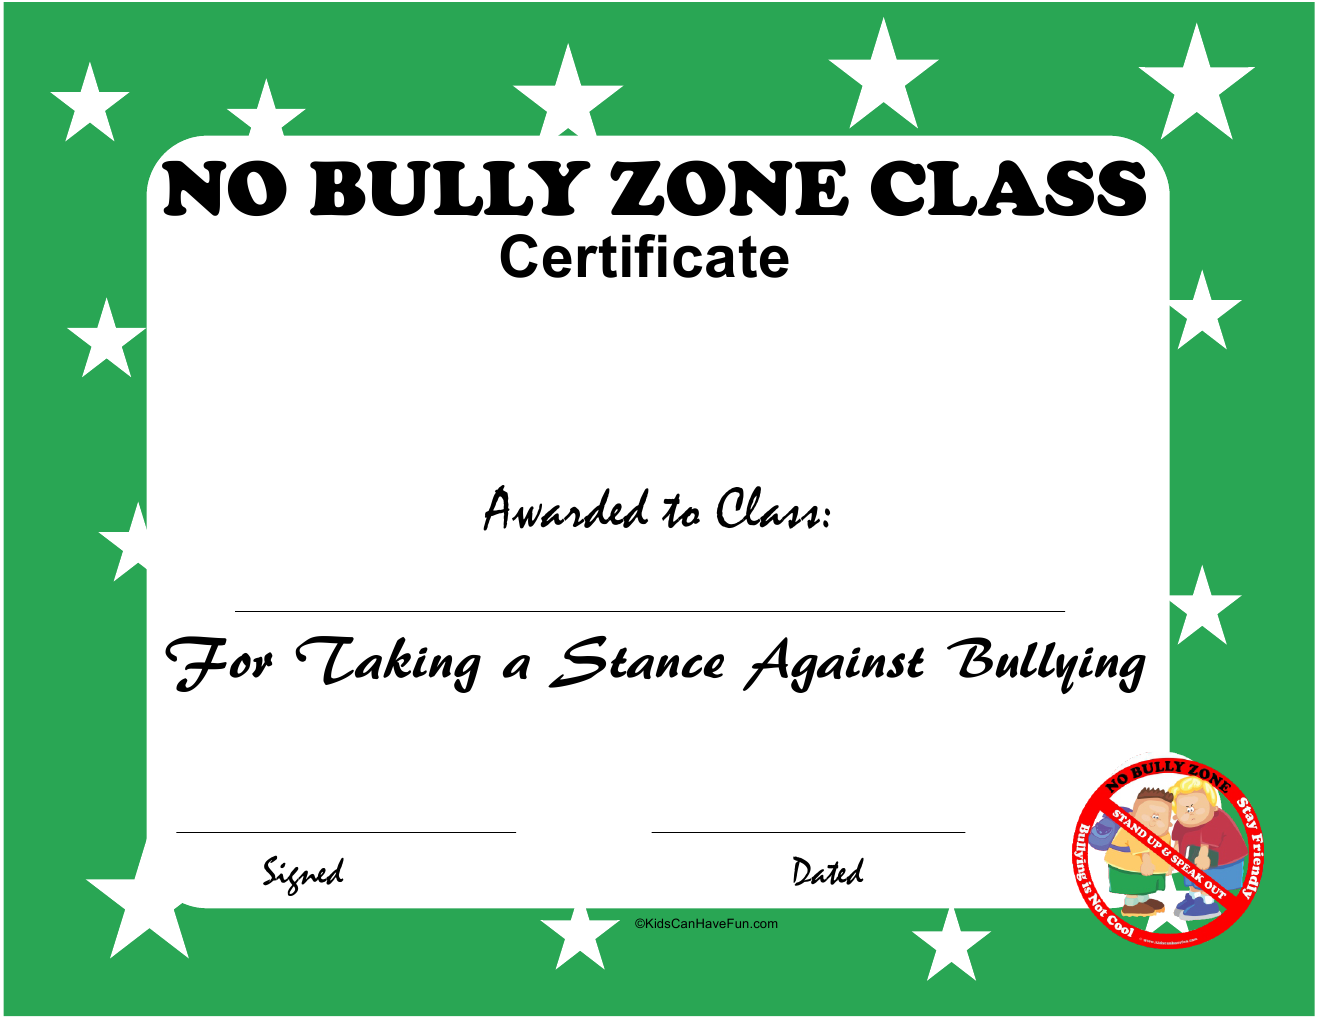 No Bully Zone Class Certificate